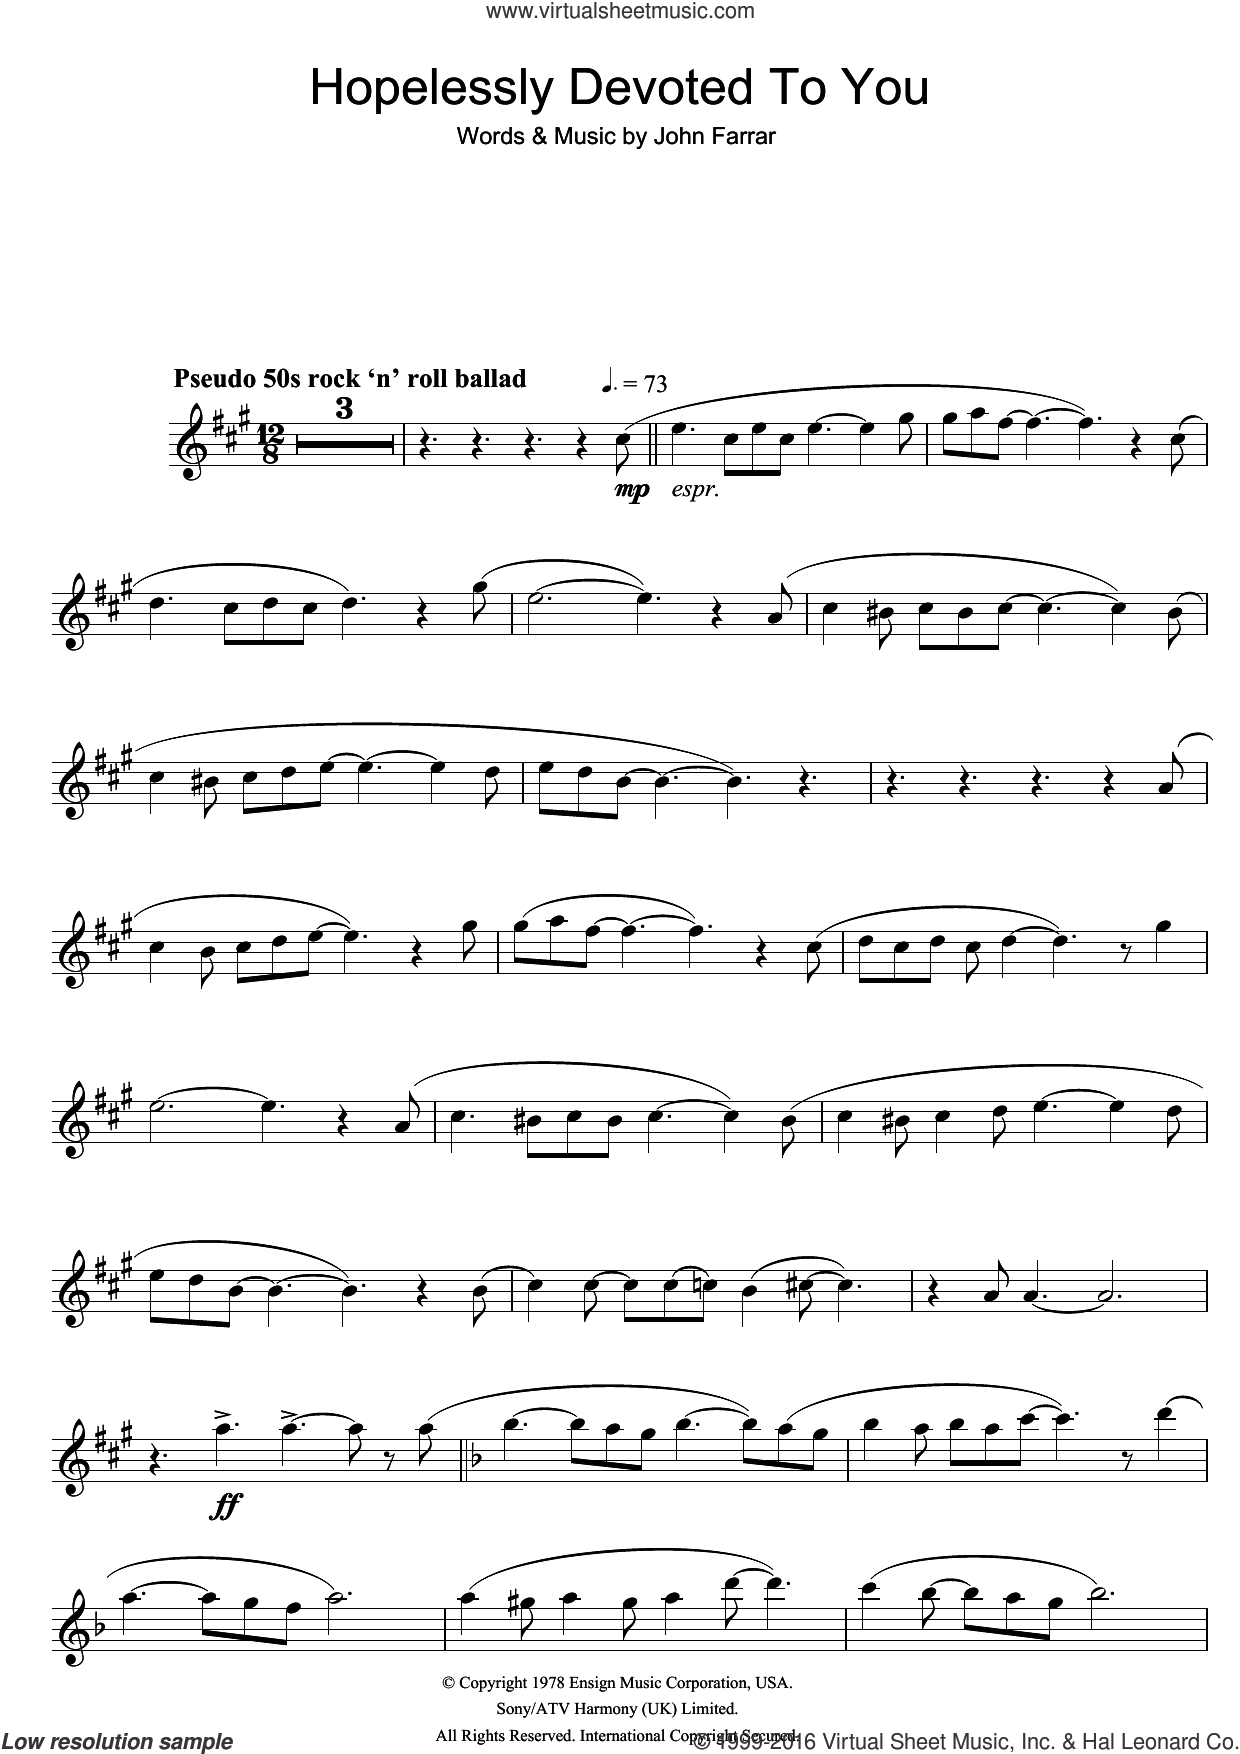 Hopelessly Devoted To You (from Grease) sheet music for tenor saxophone solo by Olivia Newton-John and John Farrar, intermediate skill level